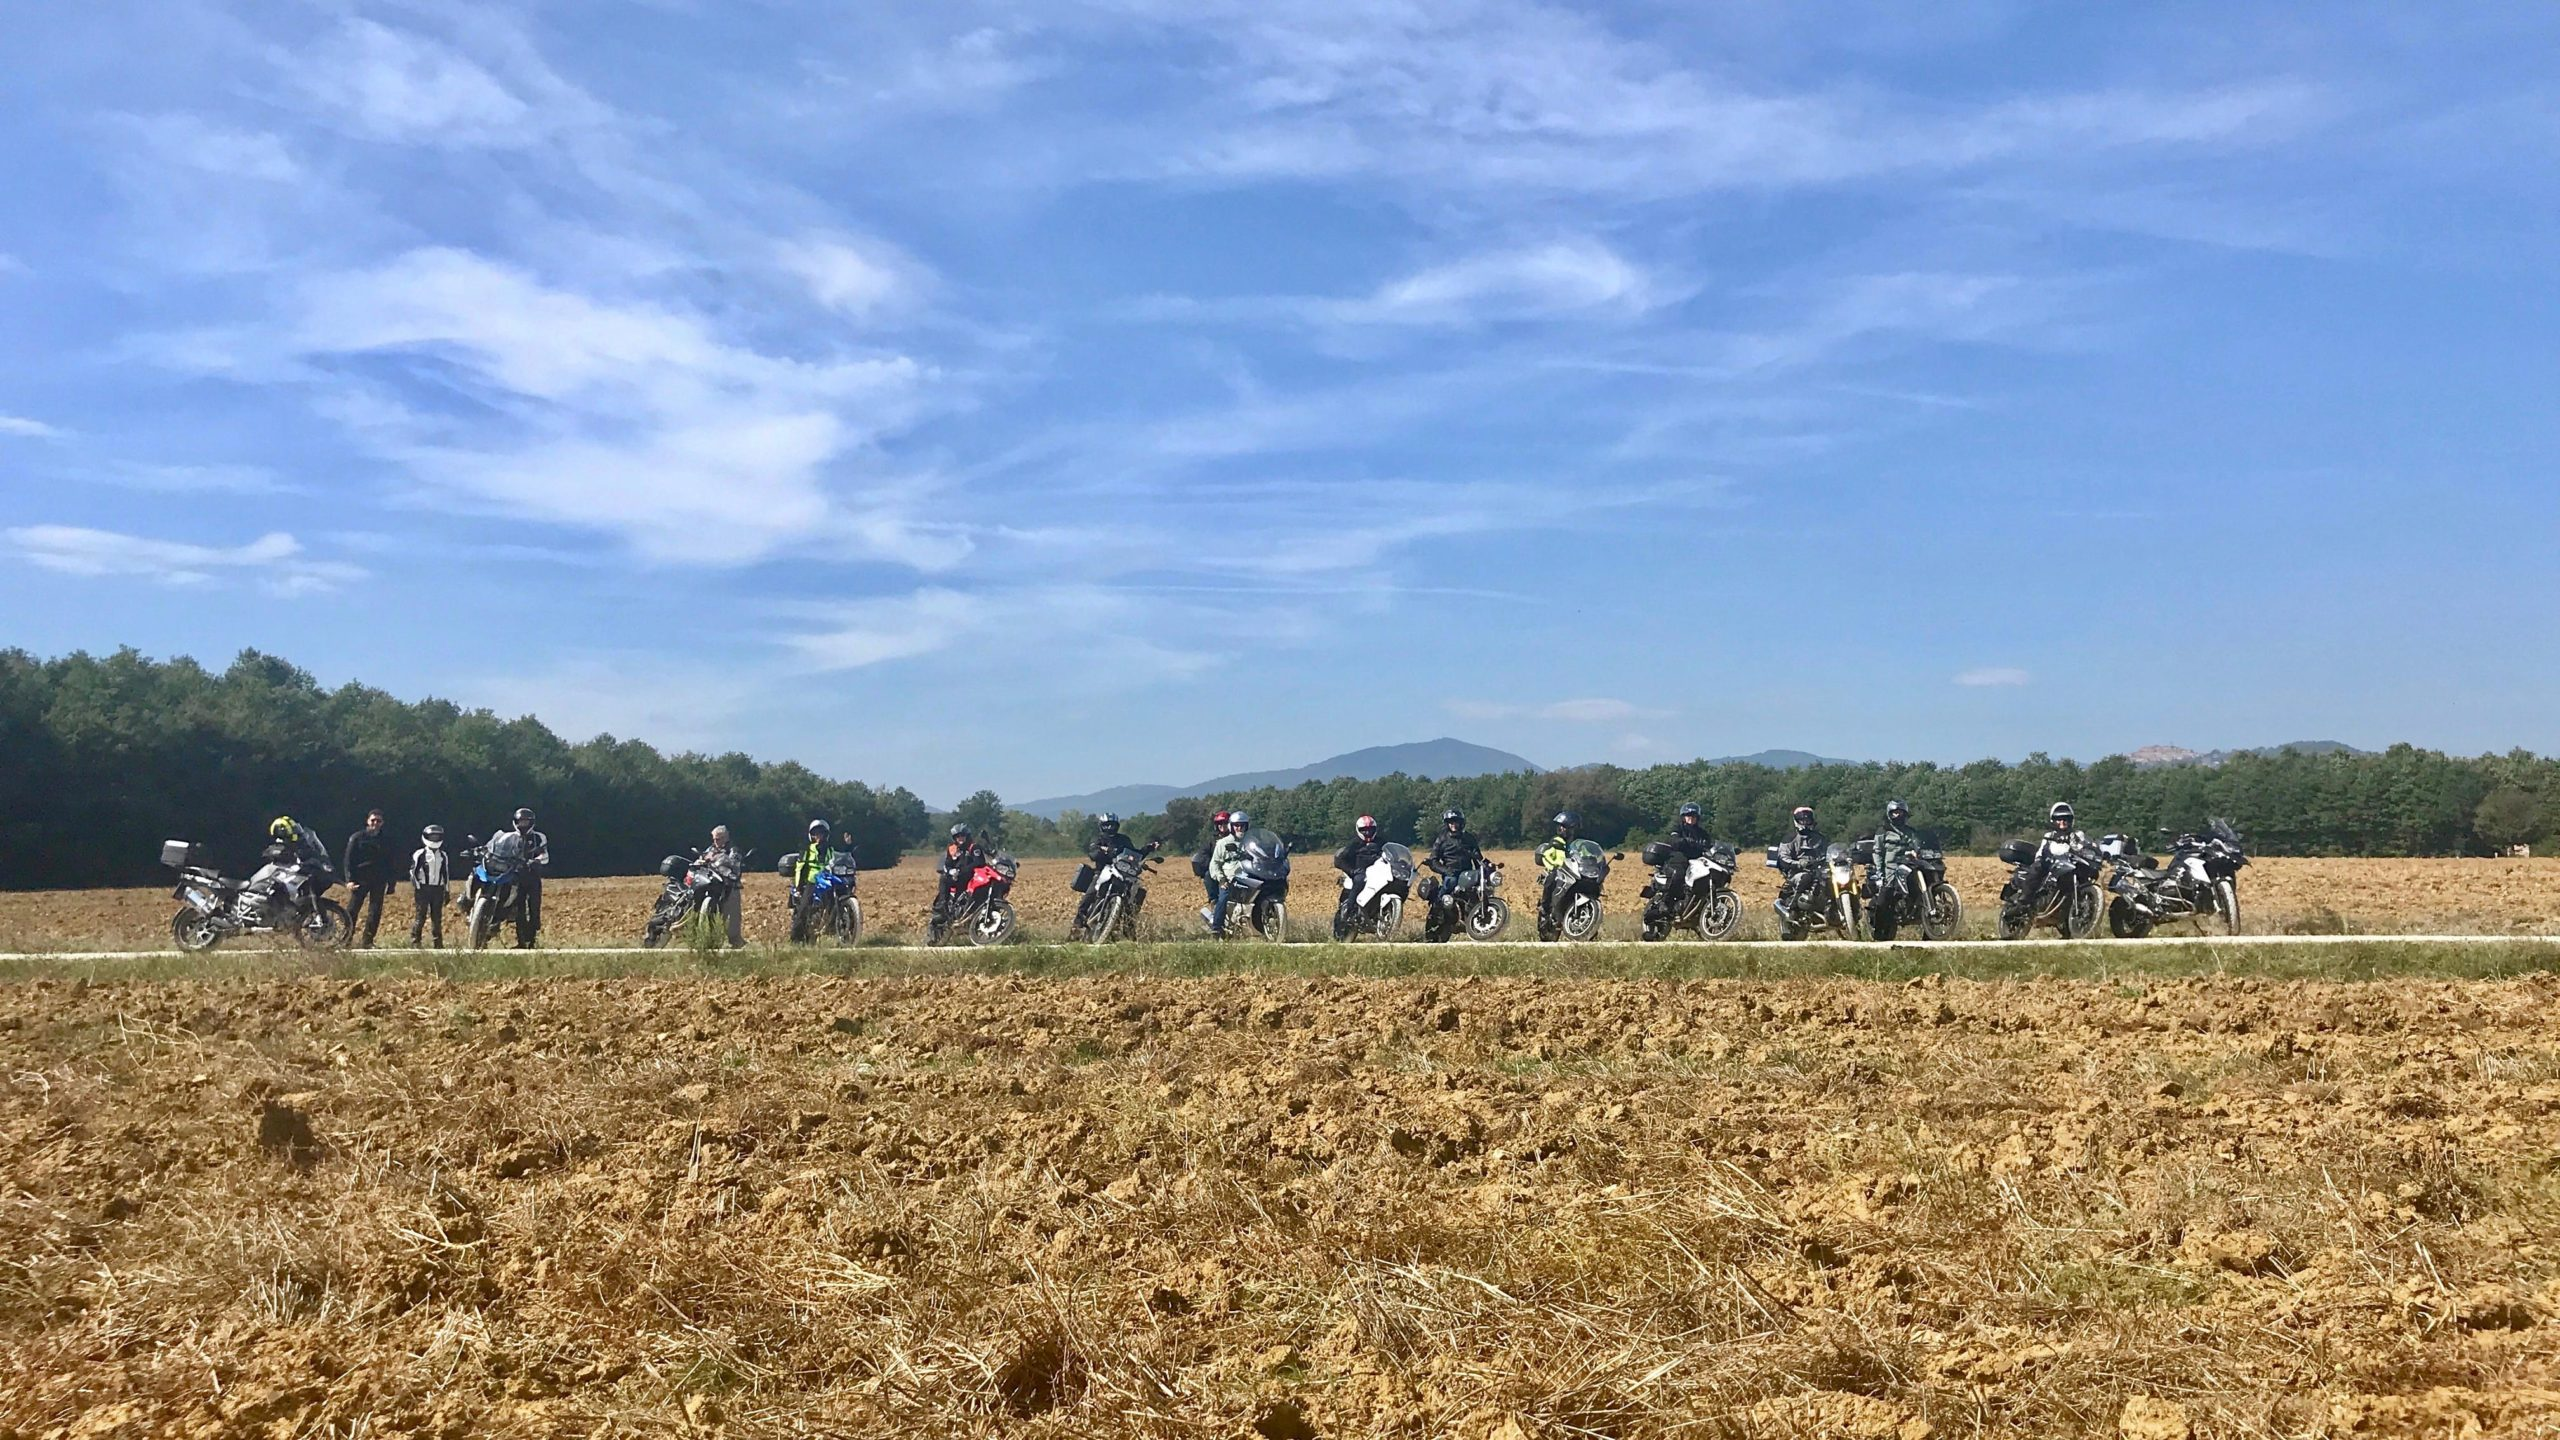 Hear The Road Motorcycle group in an amazing Tuscan landscape